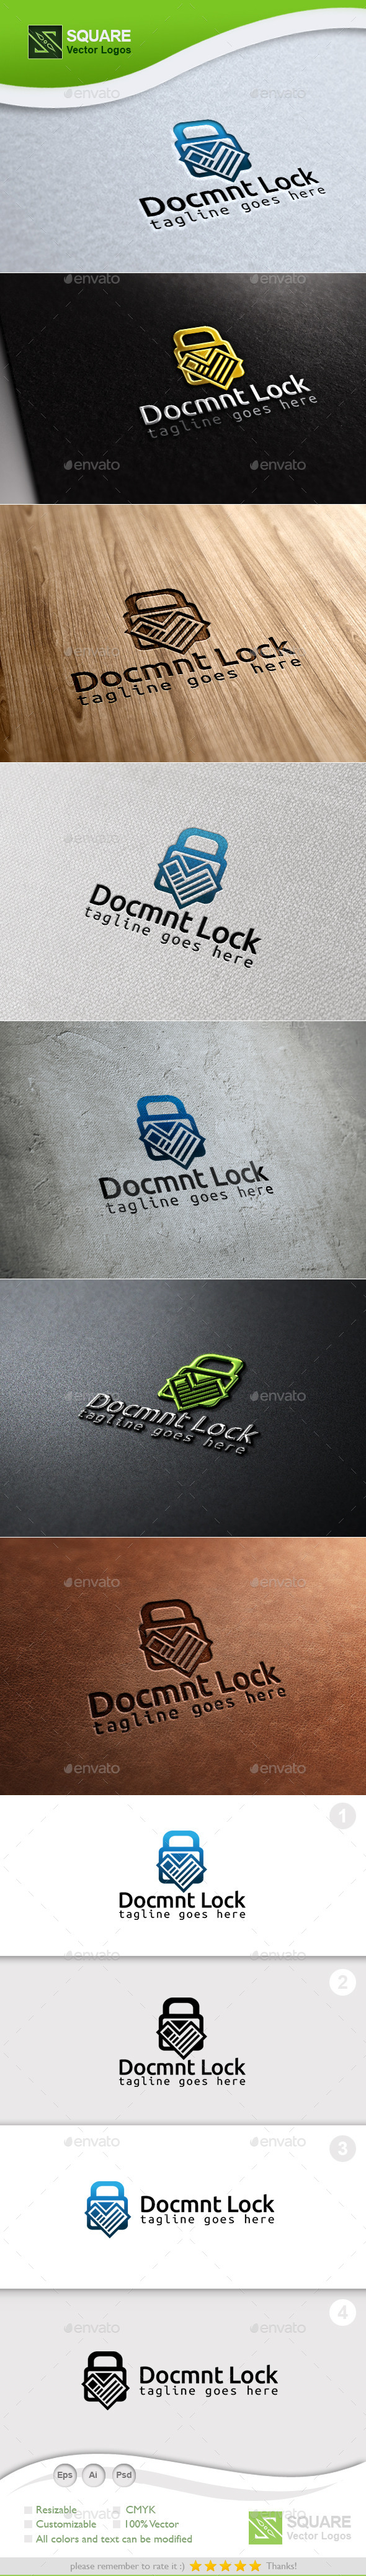 Document Locker Custom Logo Template